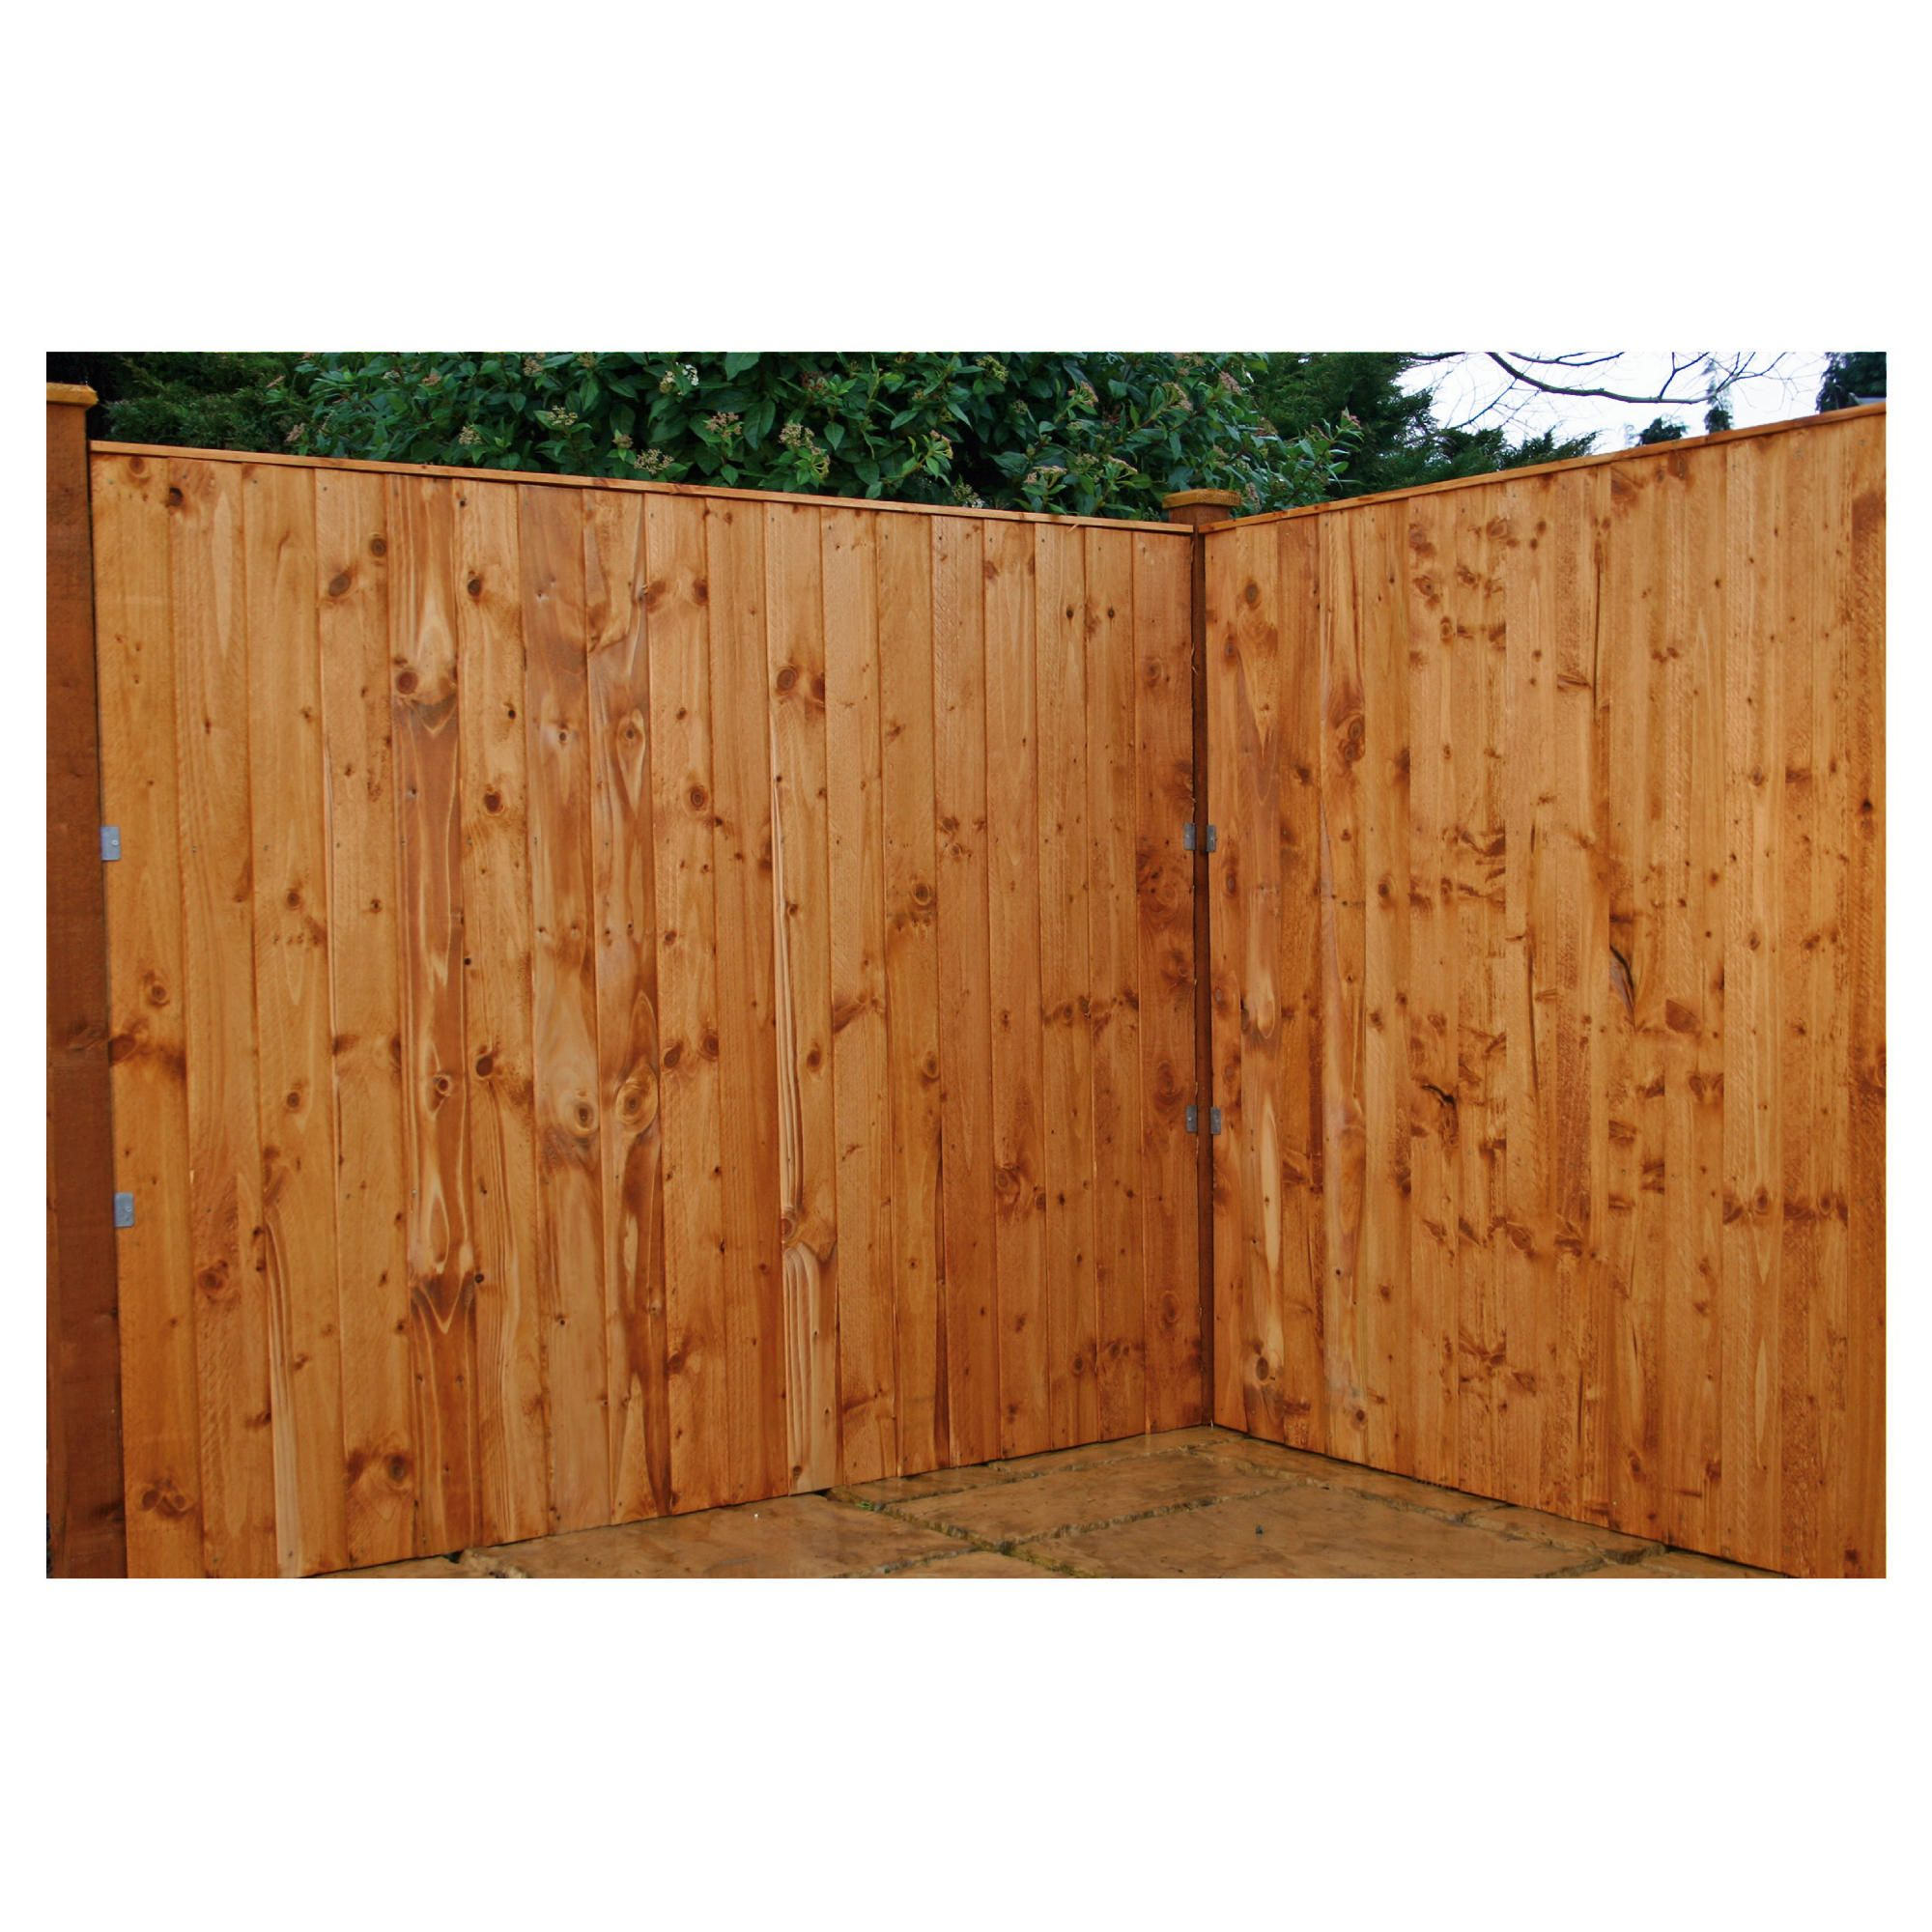 Mercia Vertical Feather Edge Fencing x7 at Tesco Direct